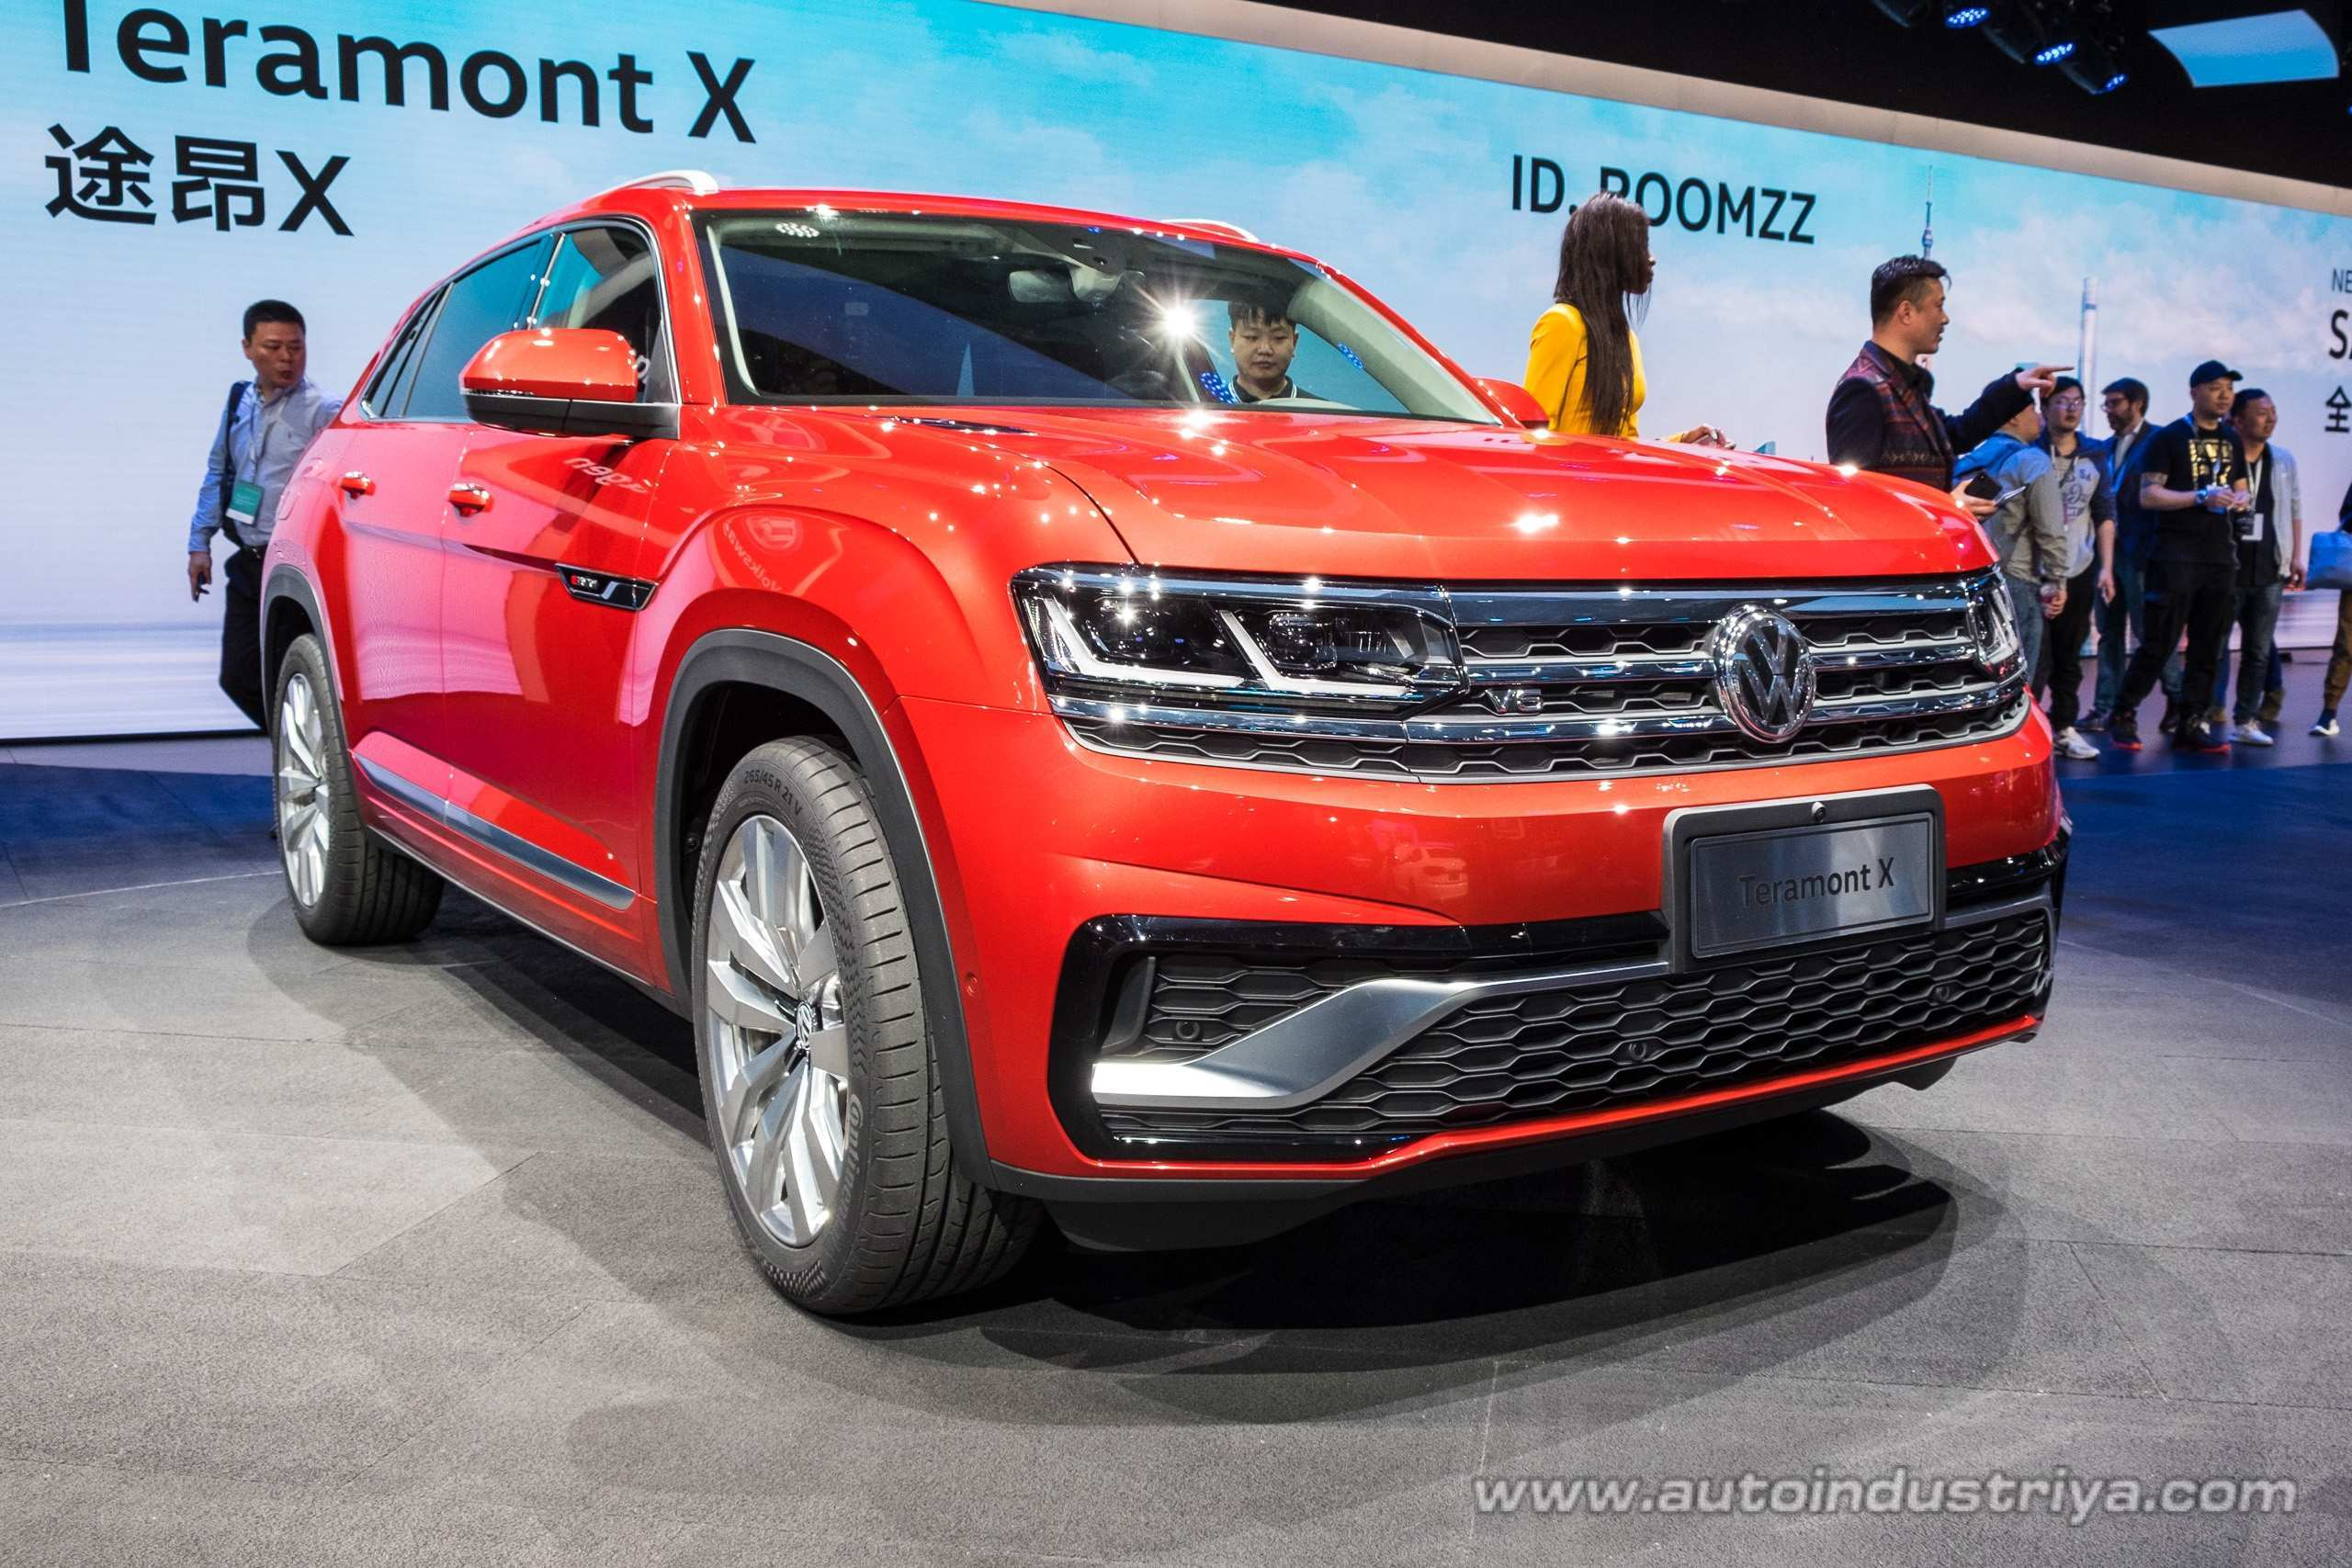 15 New 2020 Volkswagen Teramont X Research New by 2020 Volkswagen Teramont X